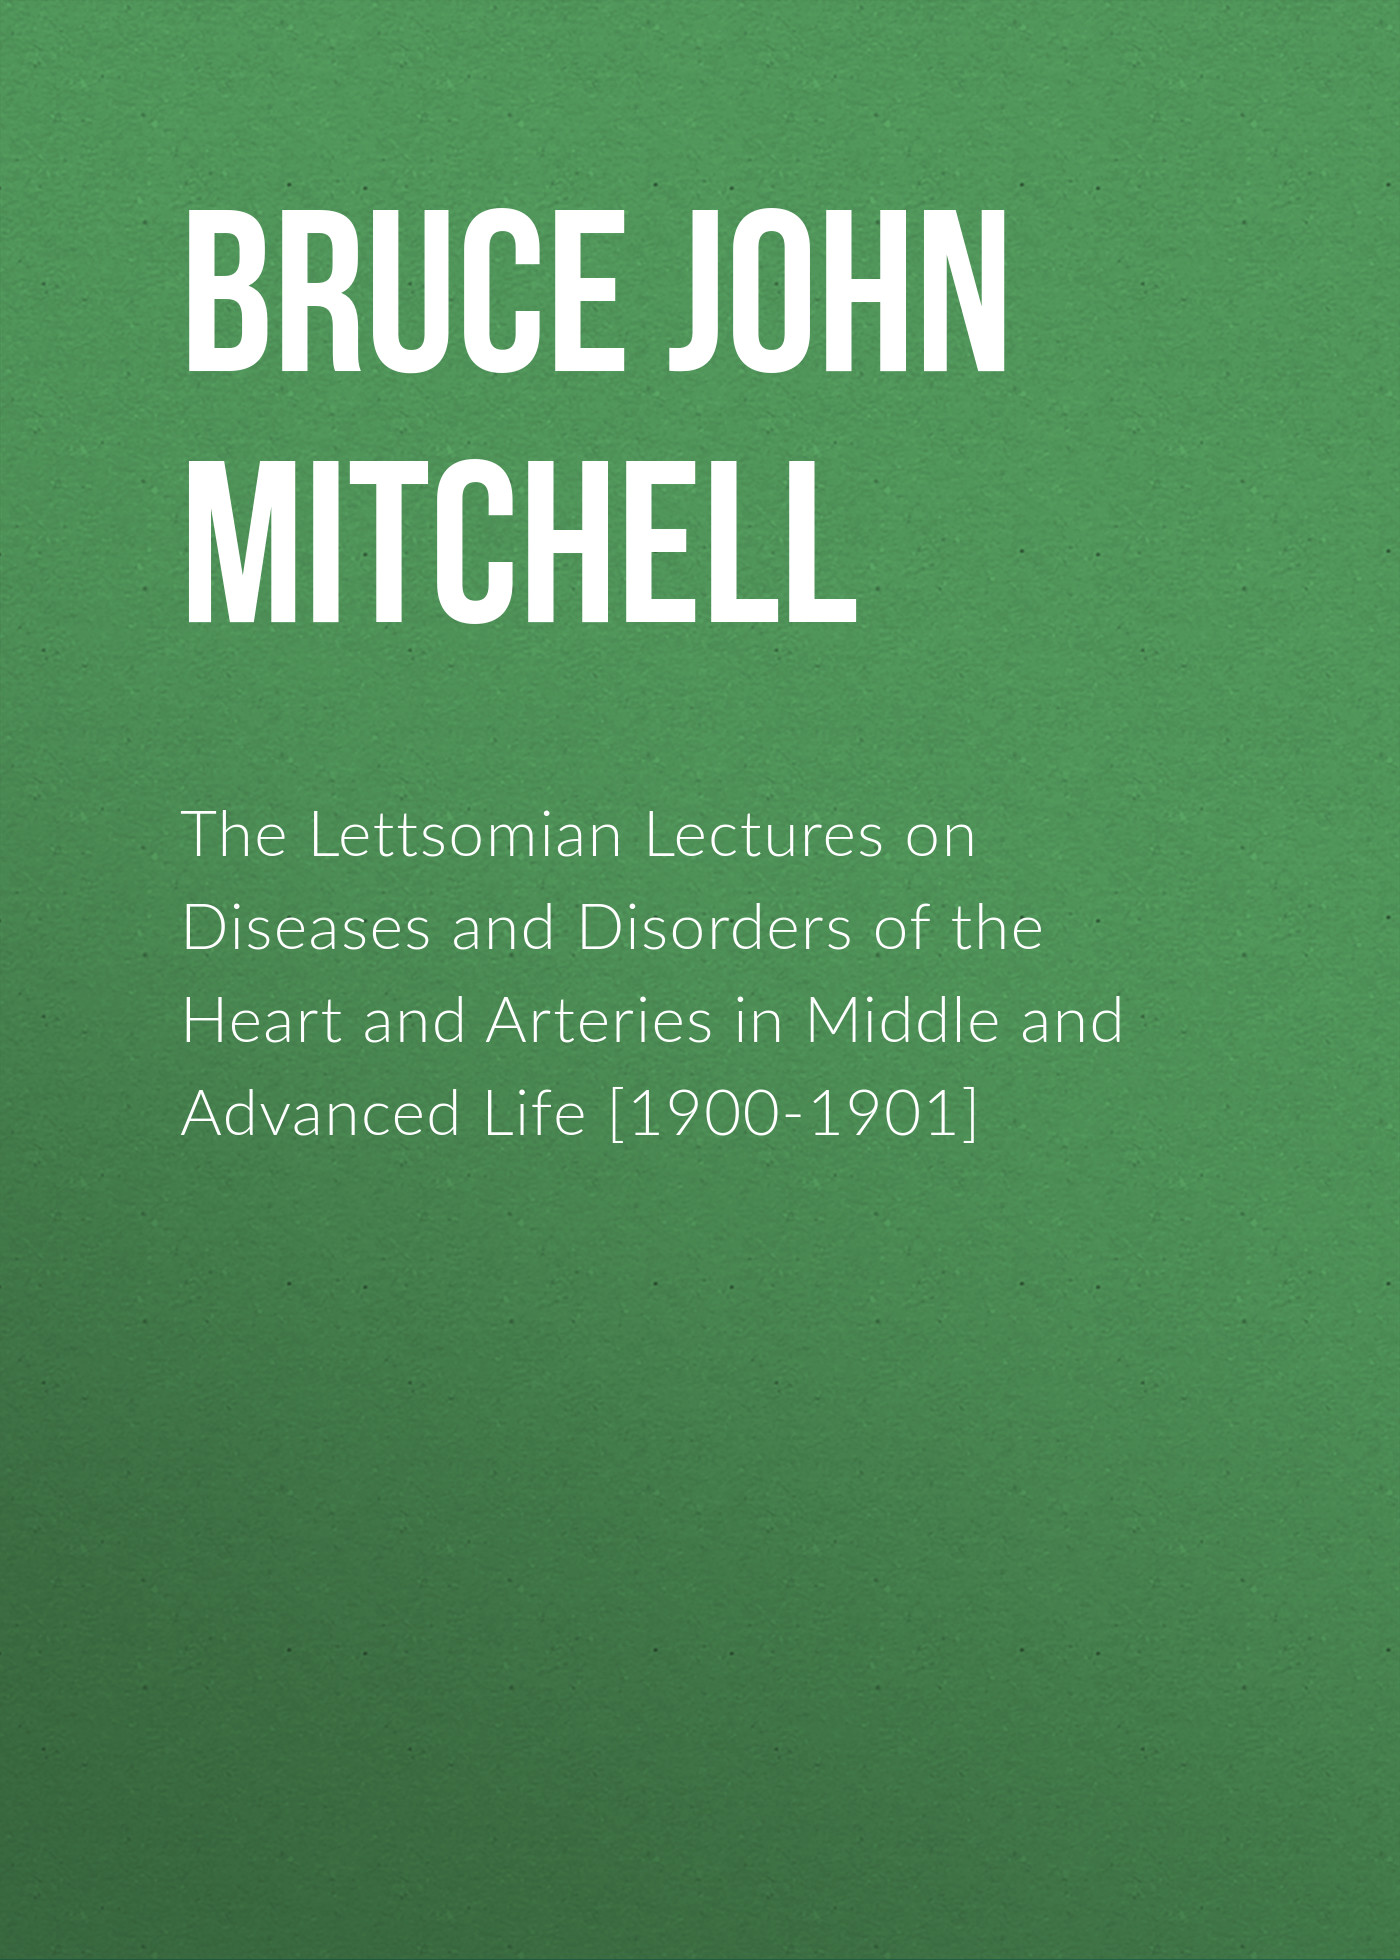 Bruce John Mitchell The Lettsomian Lectures on Diseases and Disorders of the Heart and Arteries in Middle and Advanced Life [1900-1901] libby in the middle